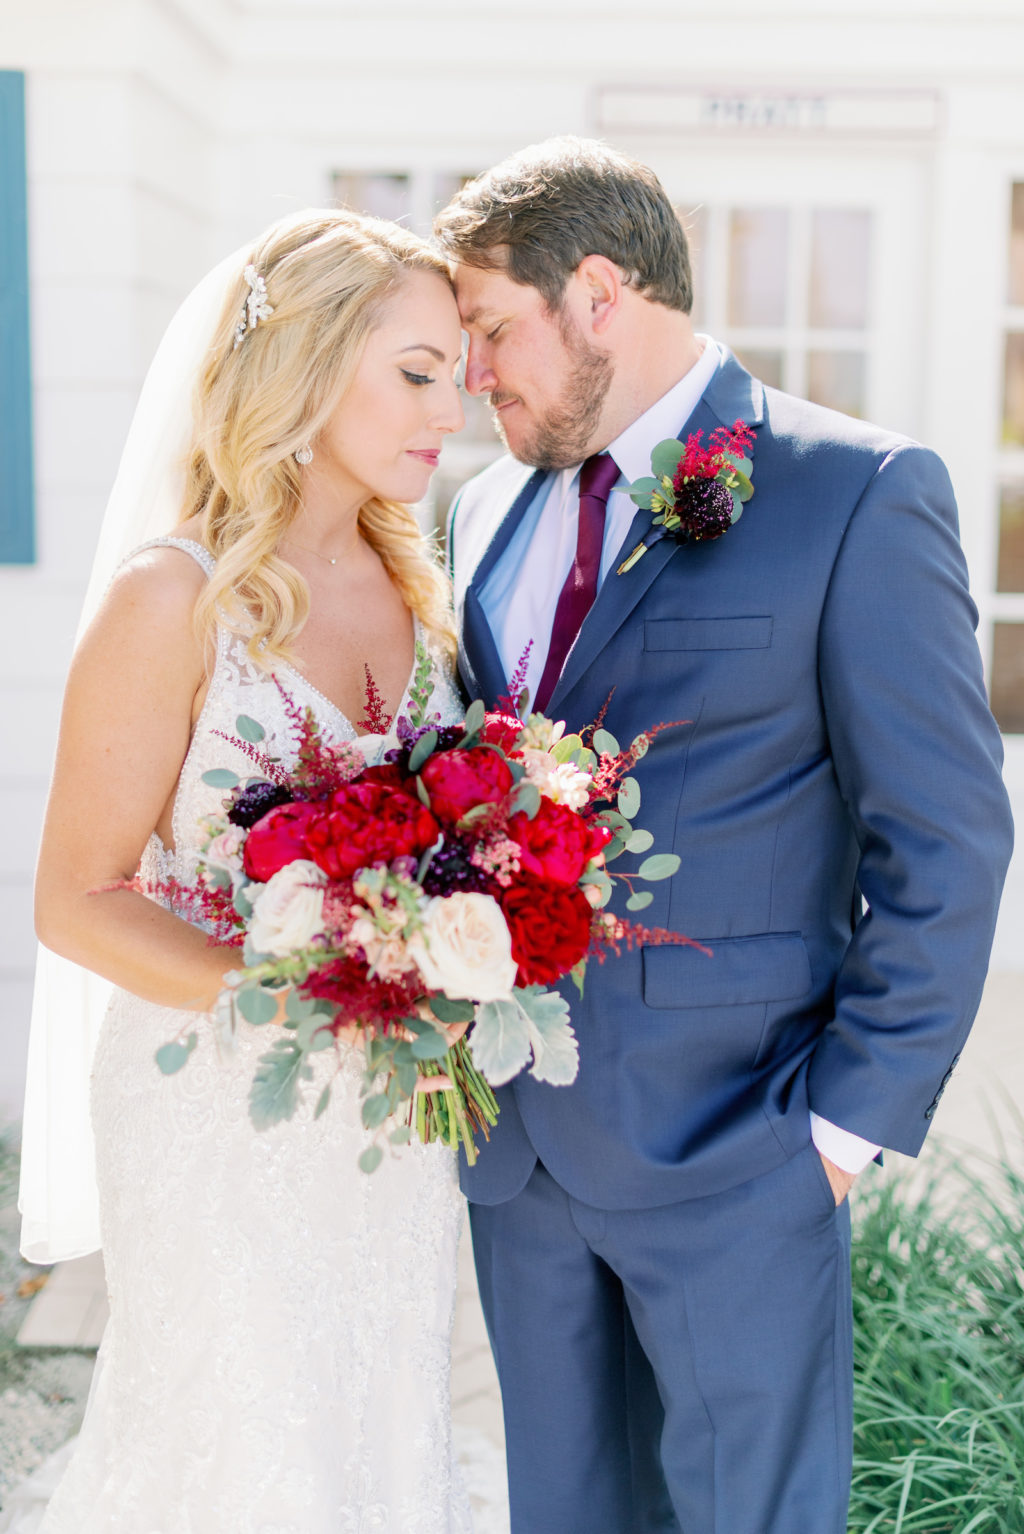 Romantic Rustic Glam Bride in Lace Wedding Dress Holding Red, Ivory and Greenery Floral Bouquet and Groom in Blue Suit   Tampa Bay Wedding Hair and Makeup Michele Renee the Studio